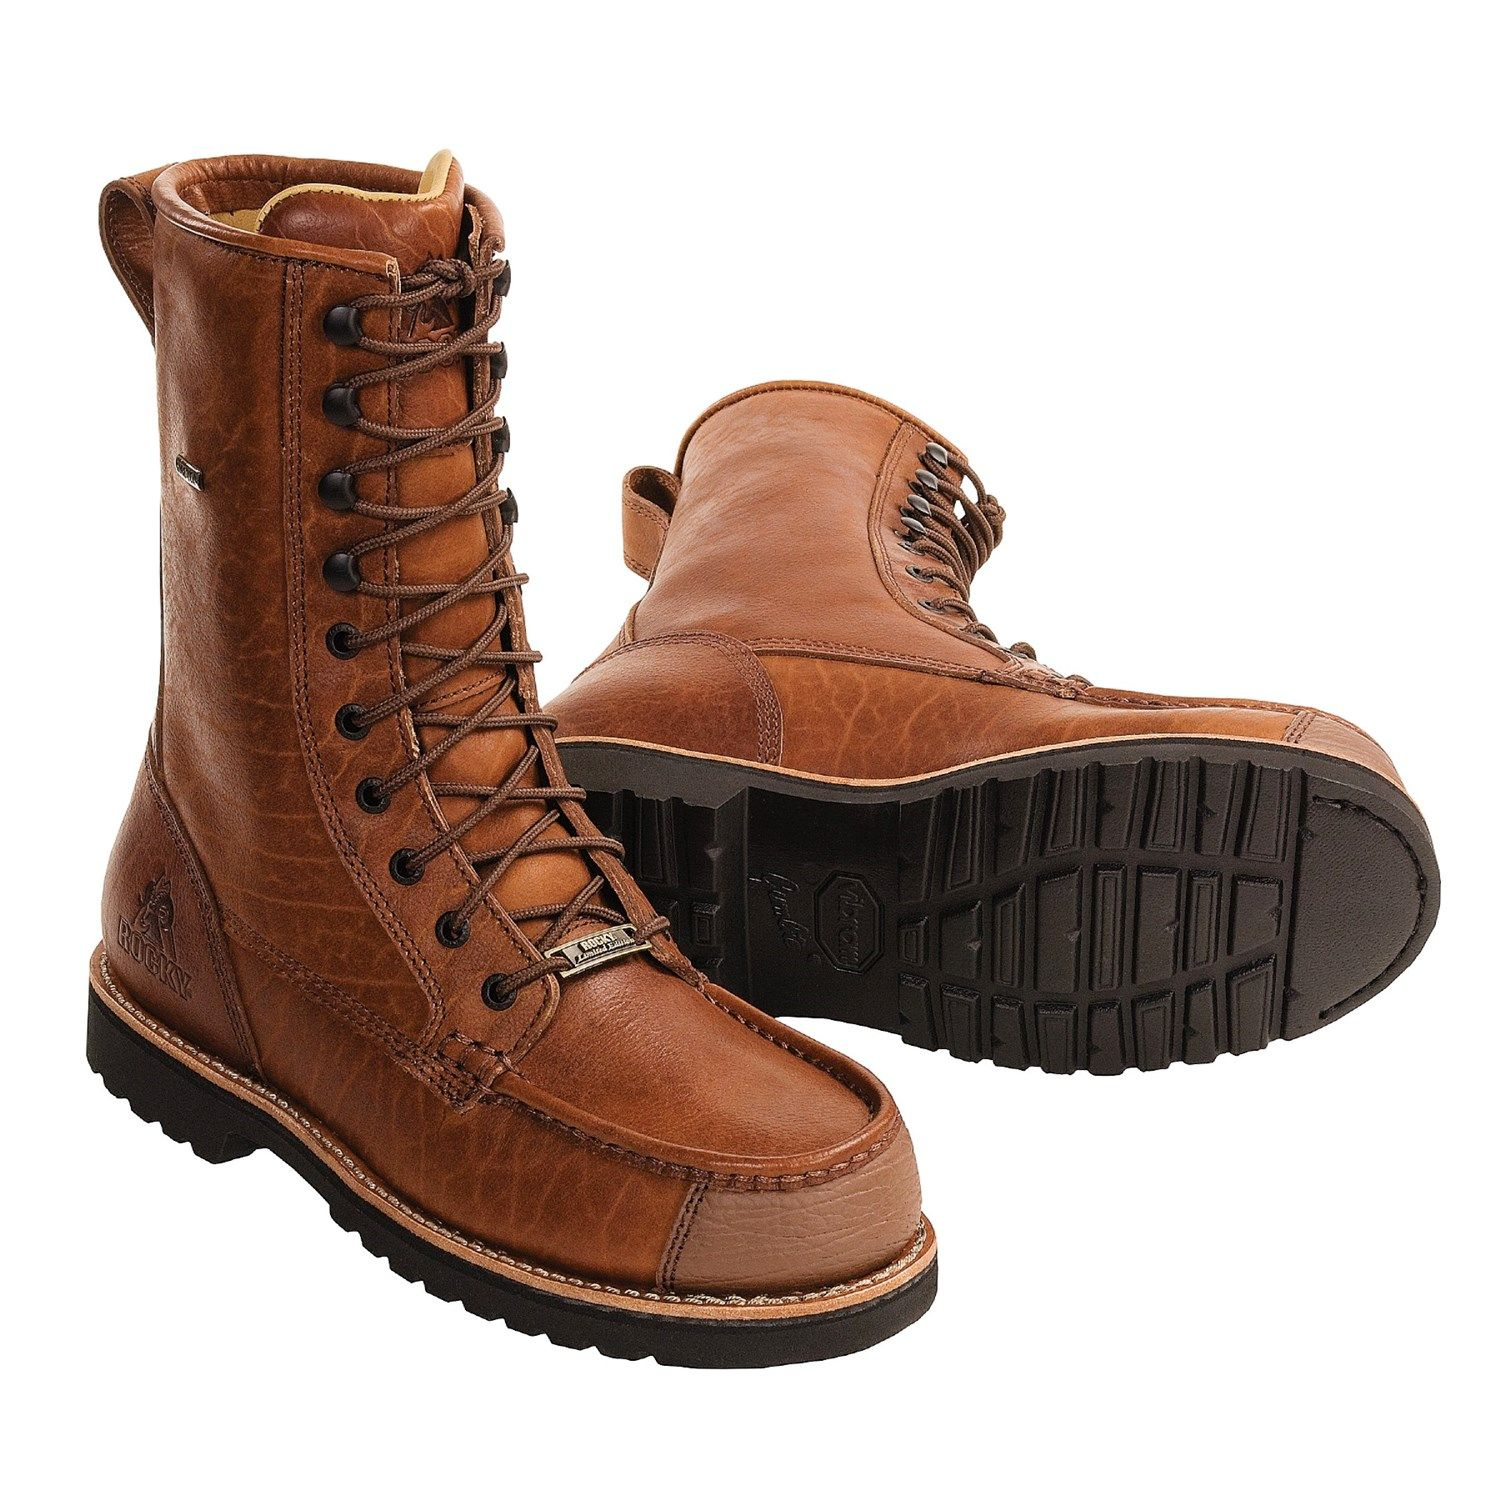 Rocky Shoes & Boots Gore-Tex® Upland Hunting Boots - Waterproof, Bison  Leather